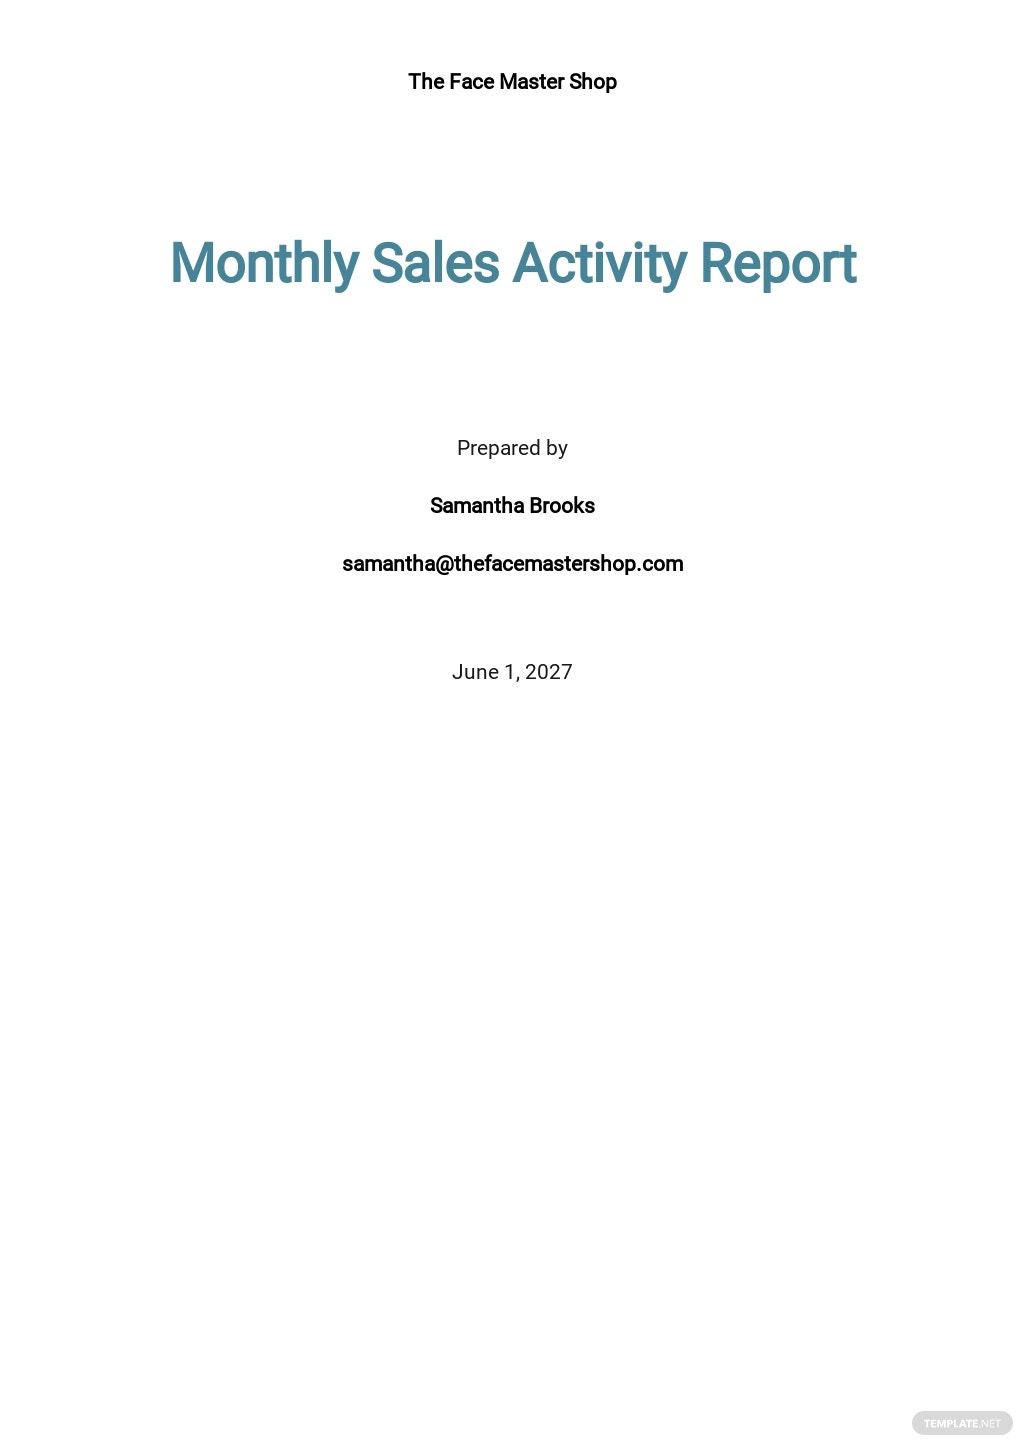 Monthly Sales Activity Report Template [Free PDF] - Google Docs, Google Sheets, Word